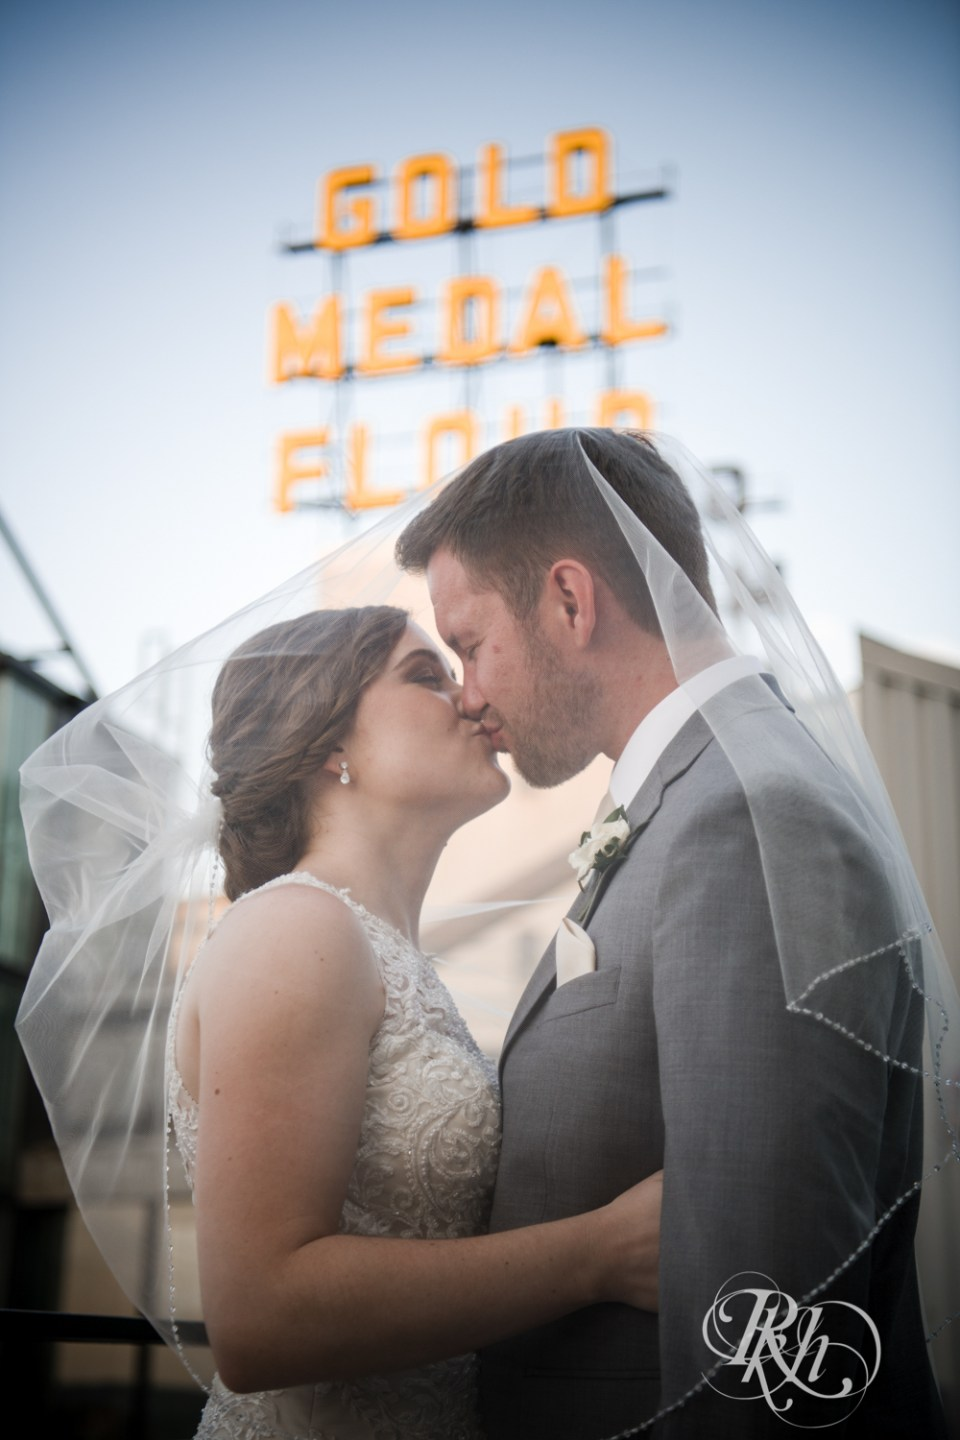 gold medal flour sign bride and groom